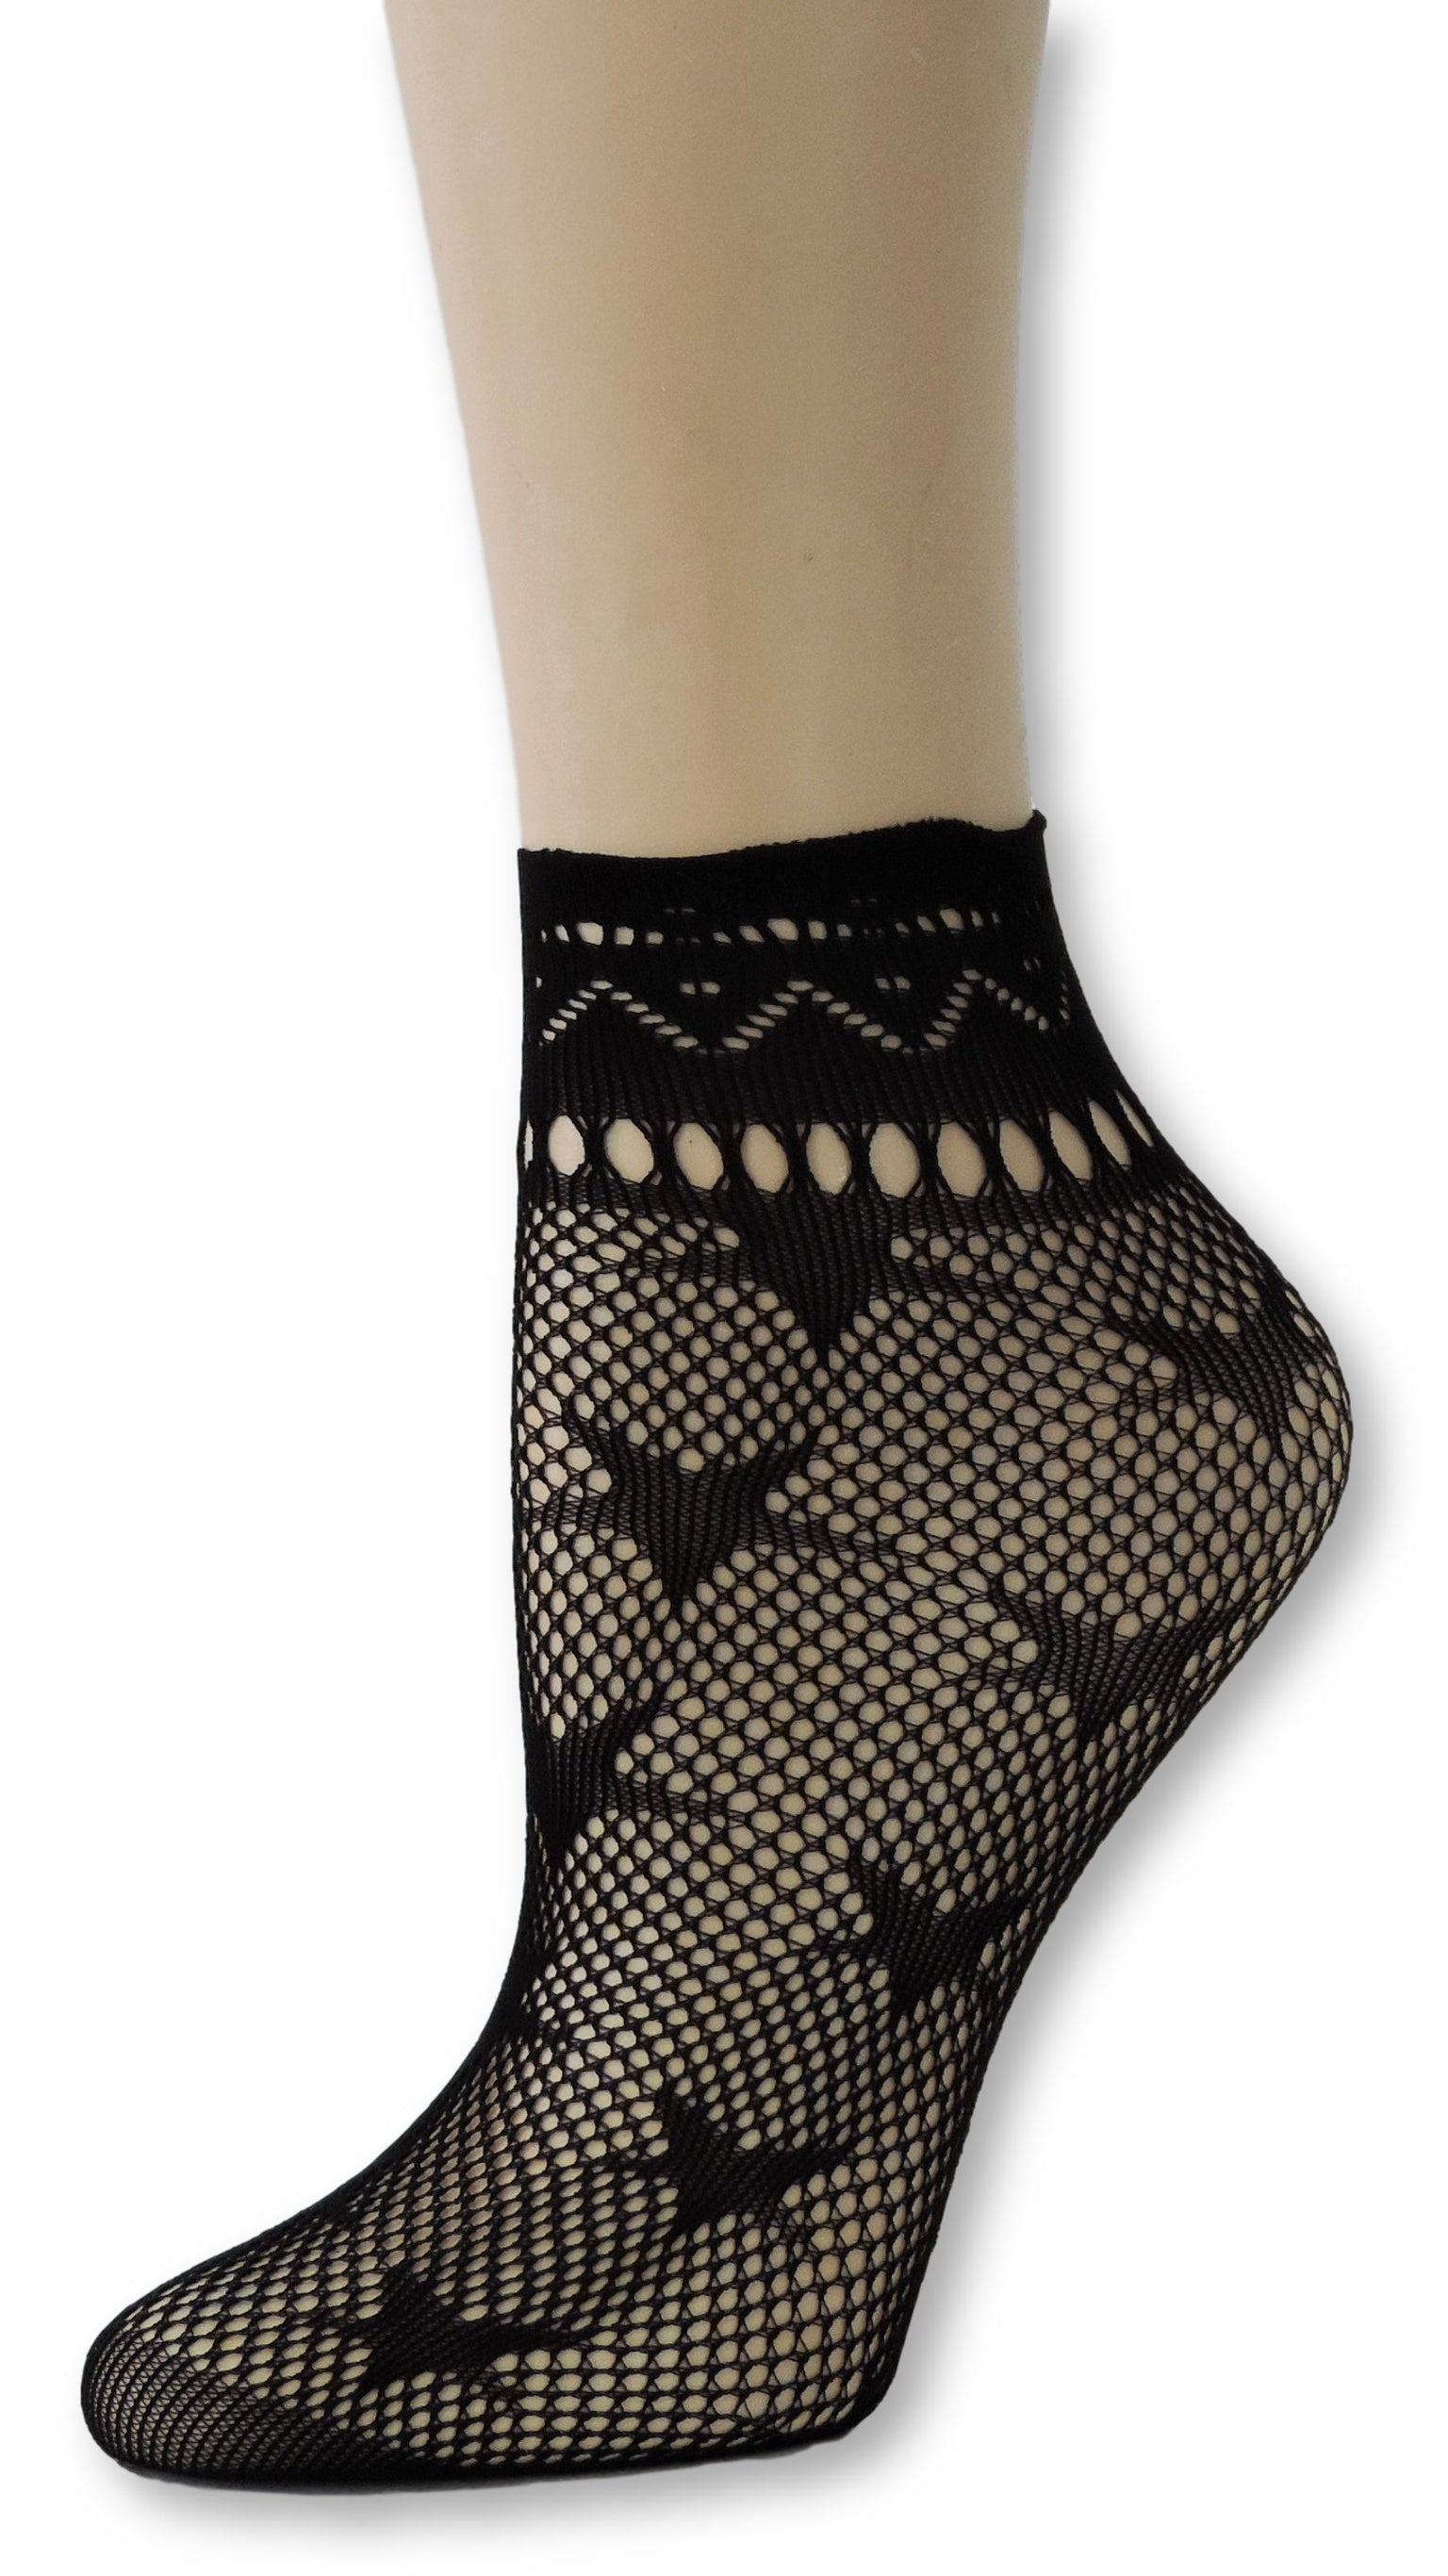 Star Ankle Mesh Socks - Global Trendz Fashion®